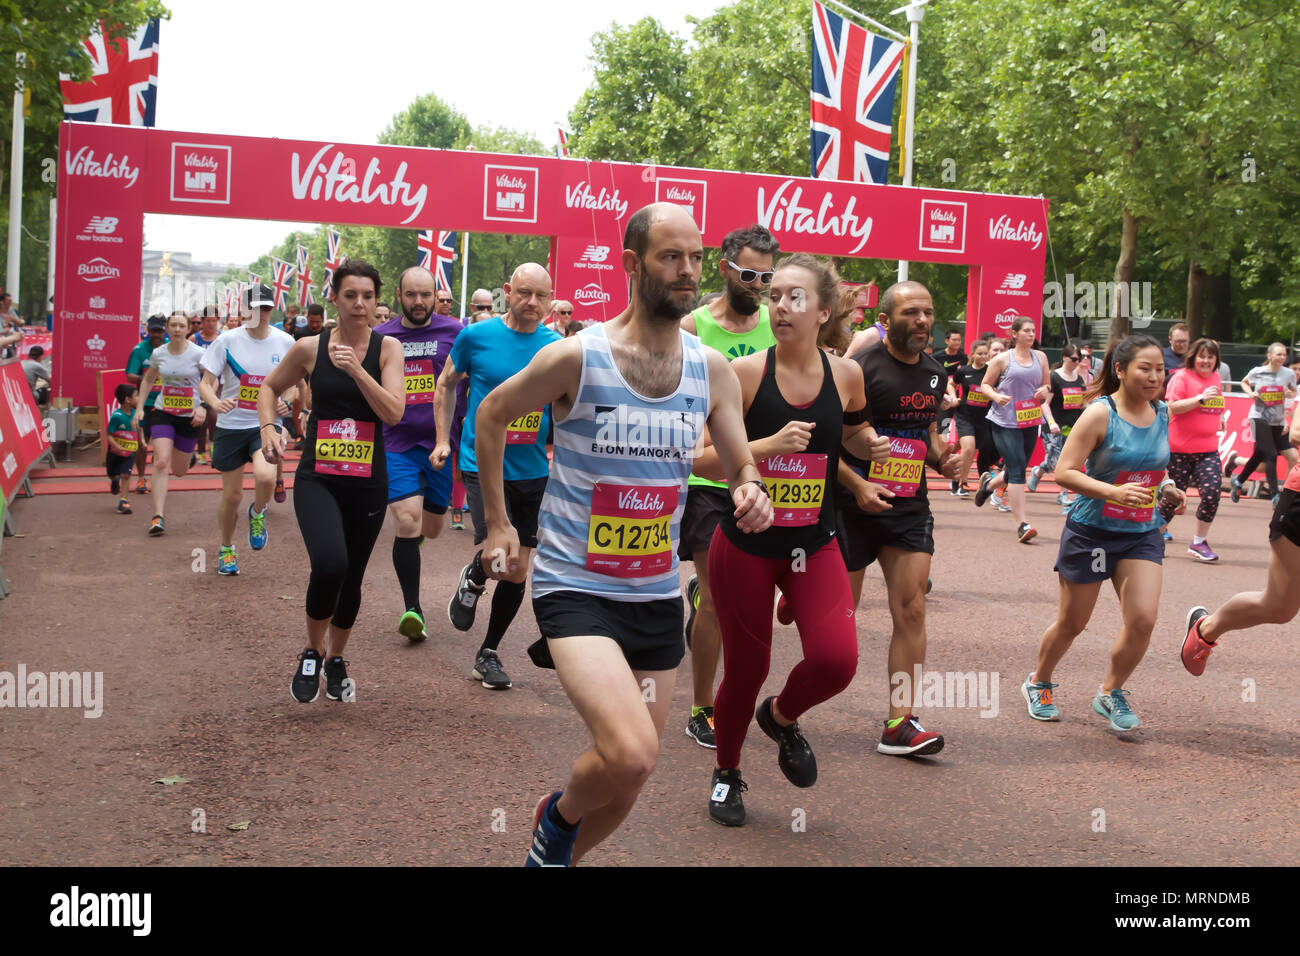 London,UK, 27th May 2018,Lord Sebastian Coe takes partin the Vitality  Westminster Mile race along the Mall.Credit Keith Larby/Alamy Live News - Stock Image